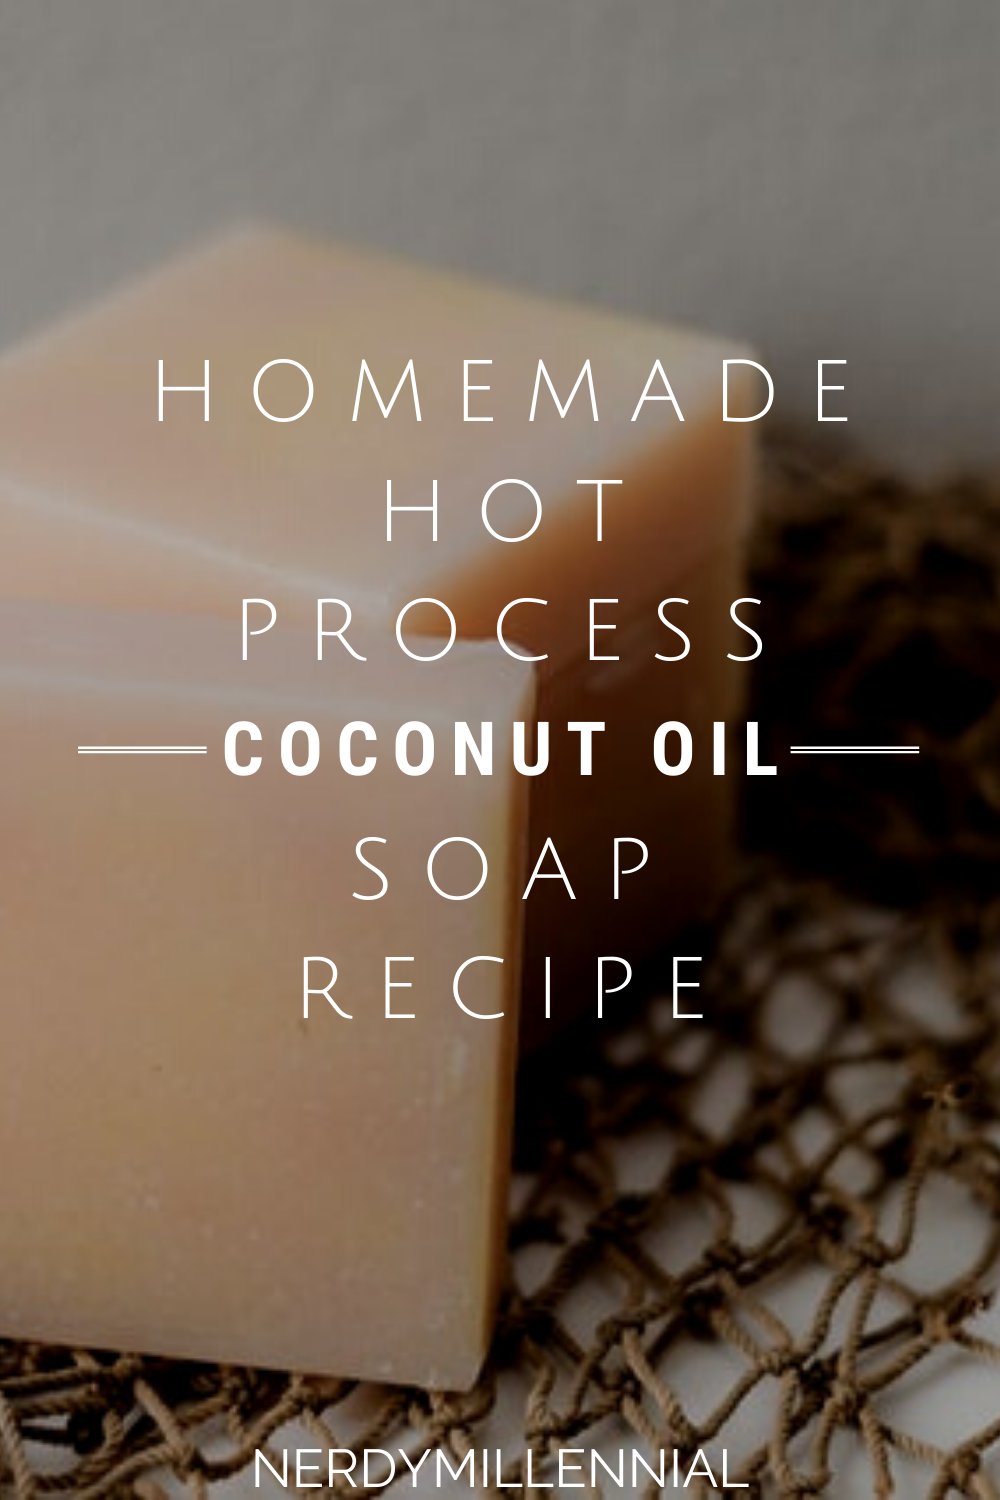 Homemade Hot Process Coconut Oil Soap Recipe (For Body Care And Laundry)